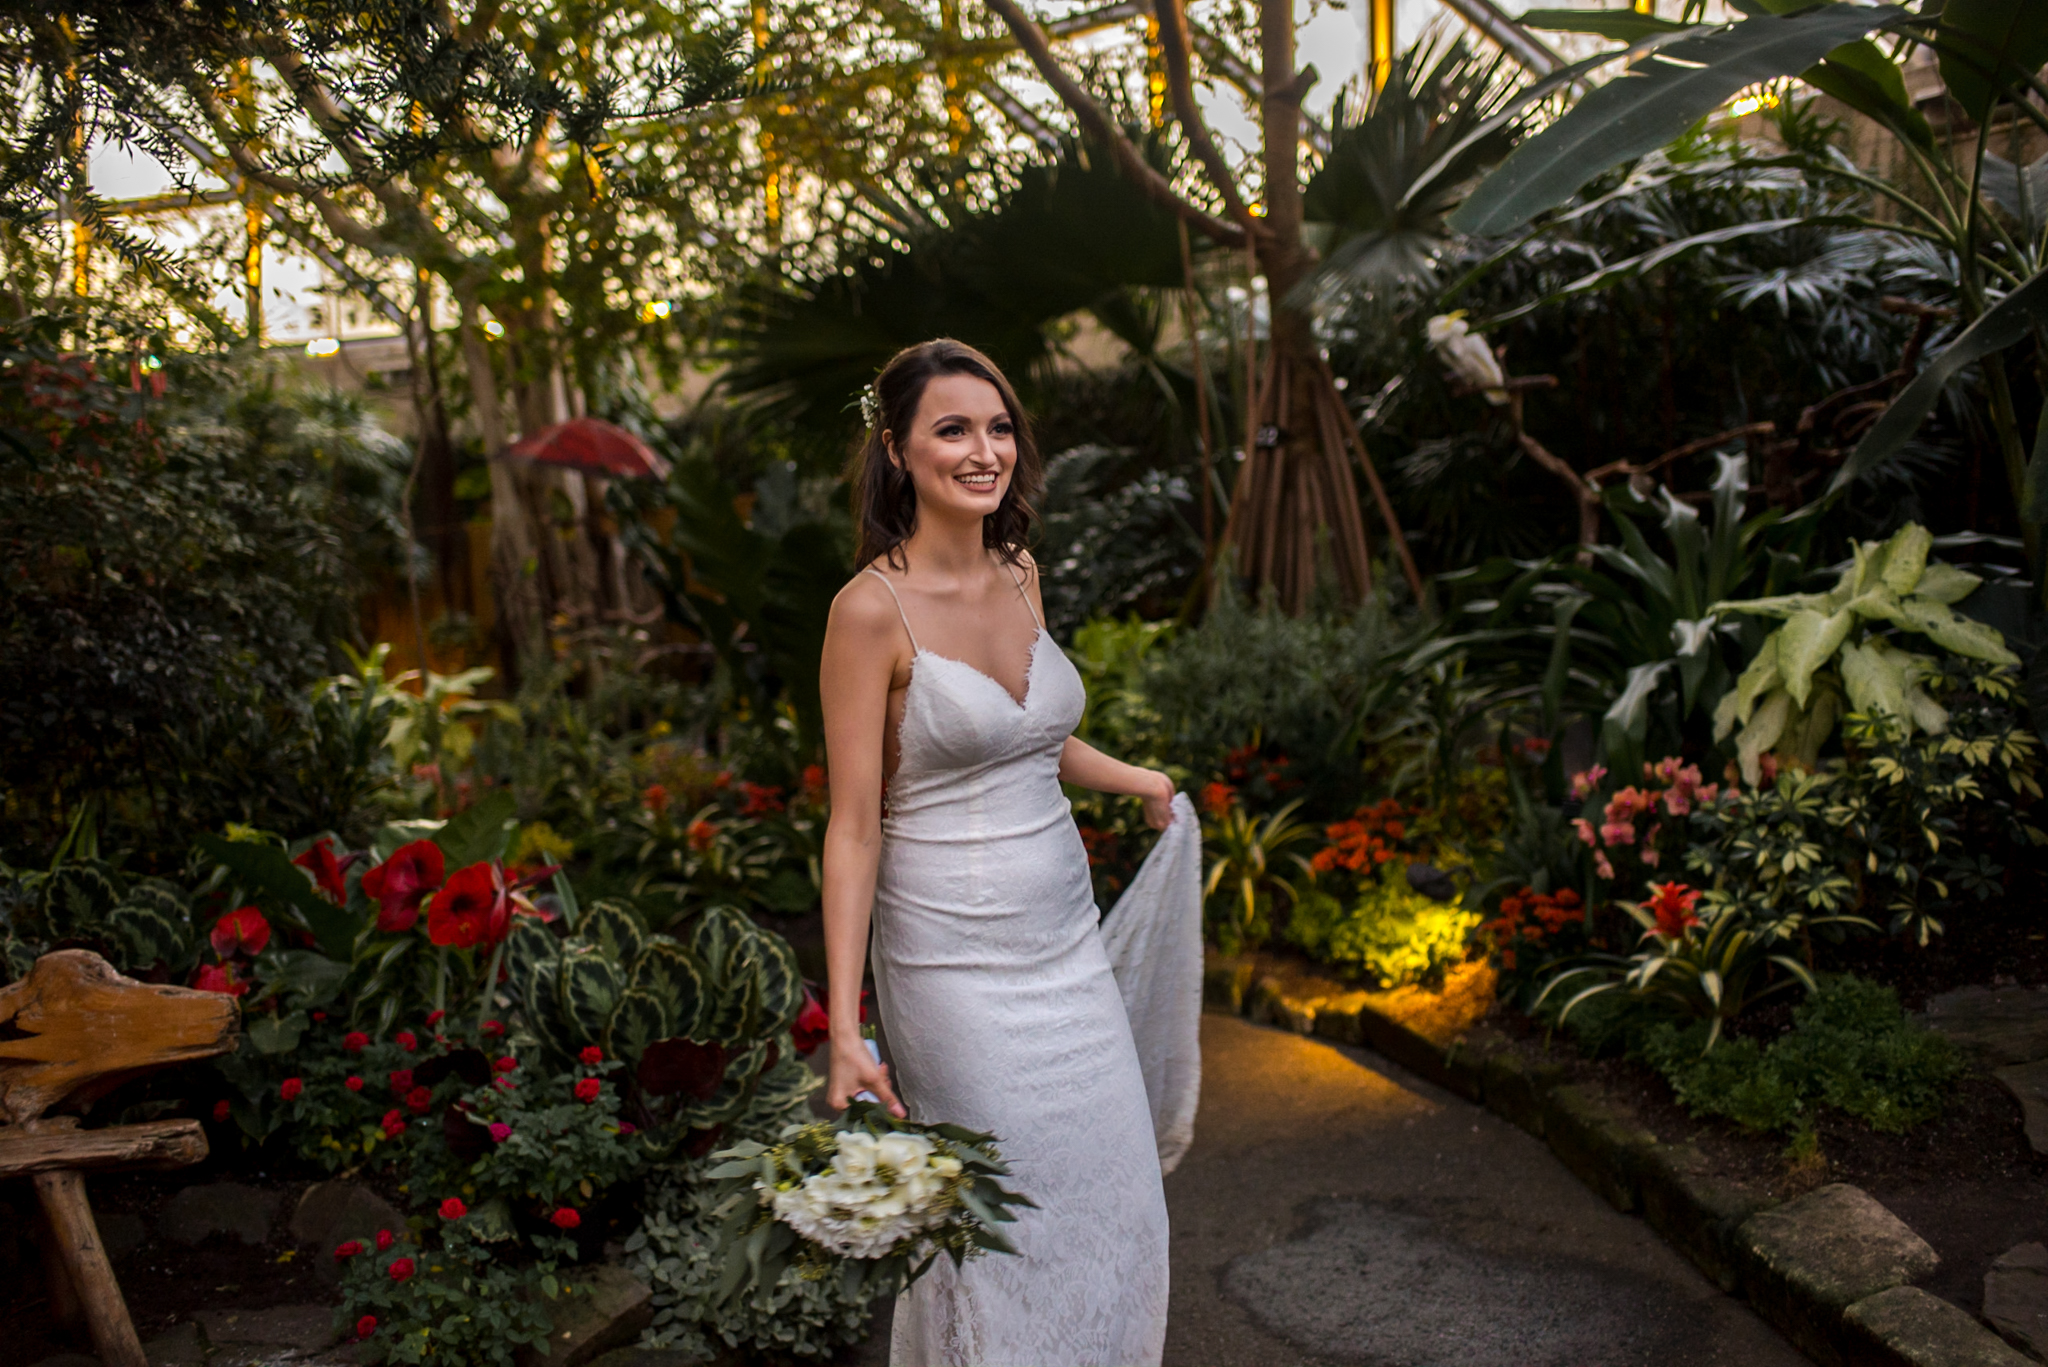 Queen Elizabeth Park Wedding Photographer-78.jpg